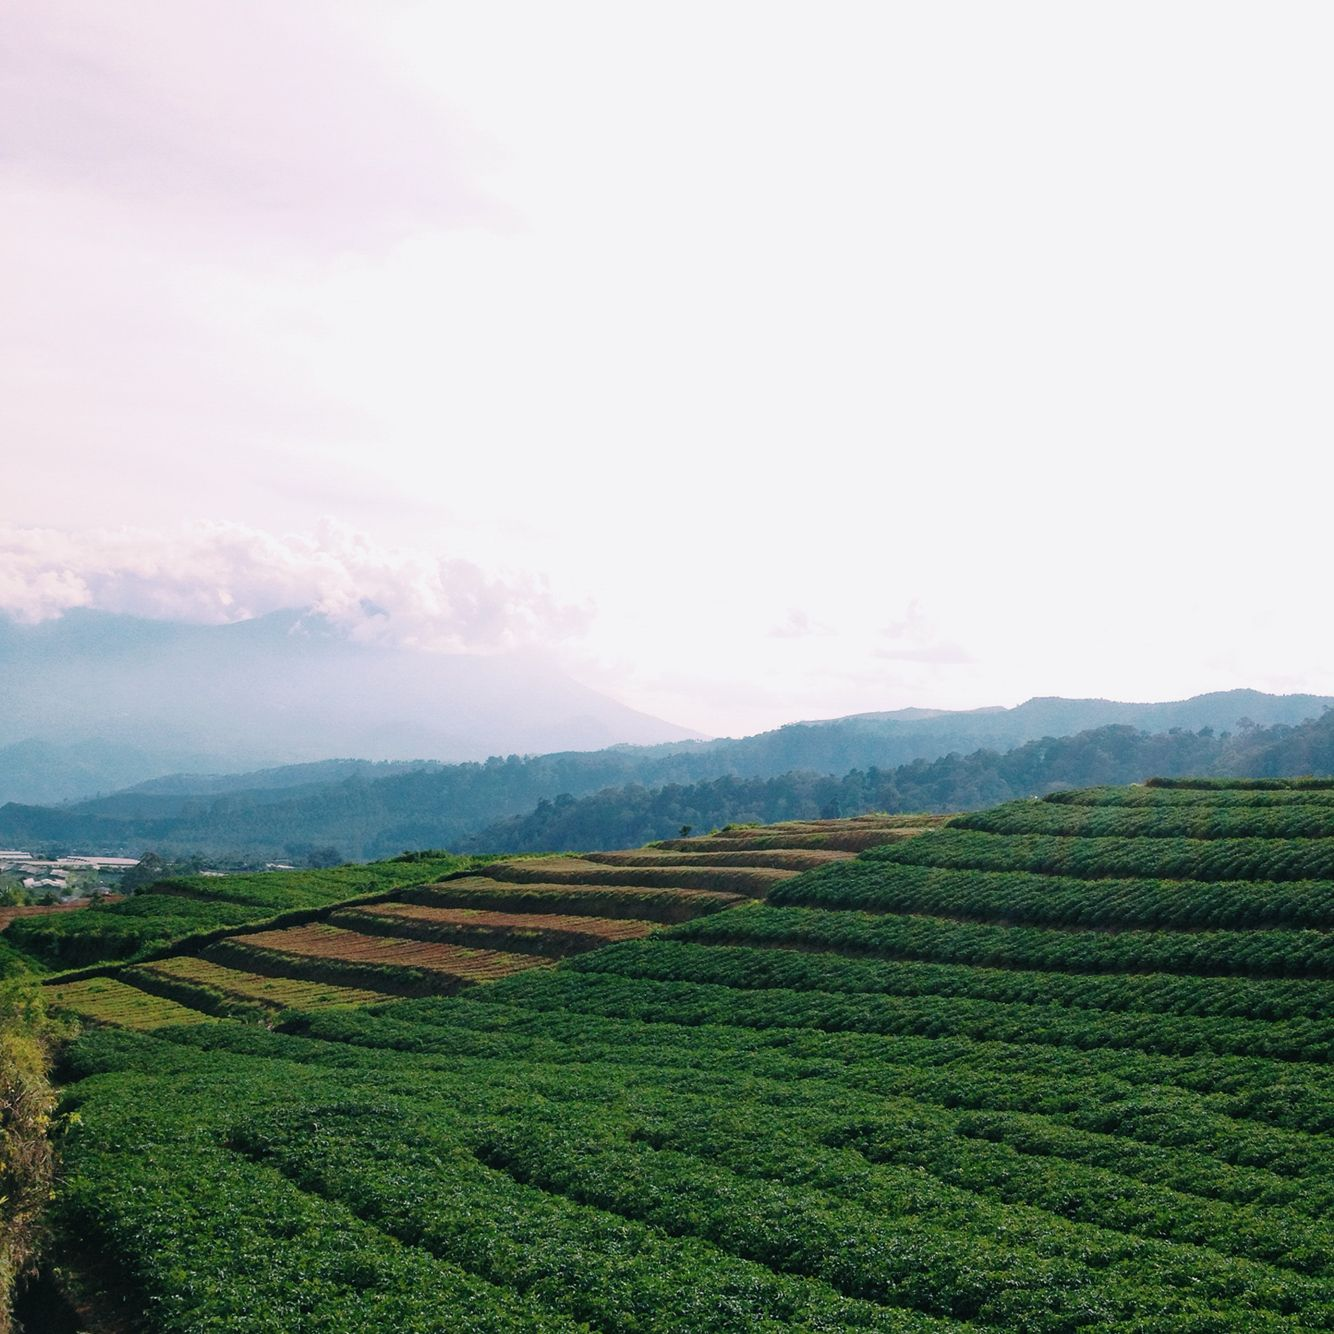 Cangar. Malang, indonesia. There was a tea garden in the